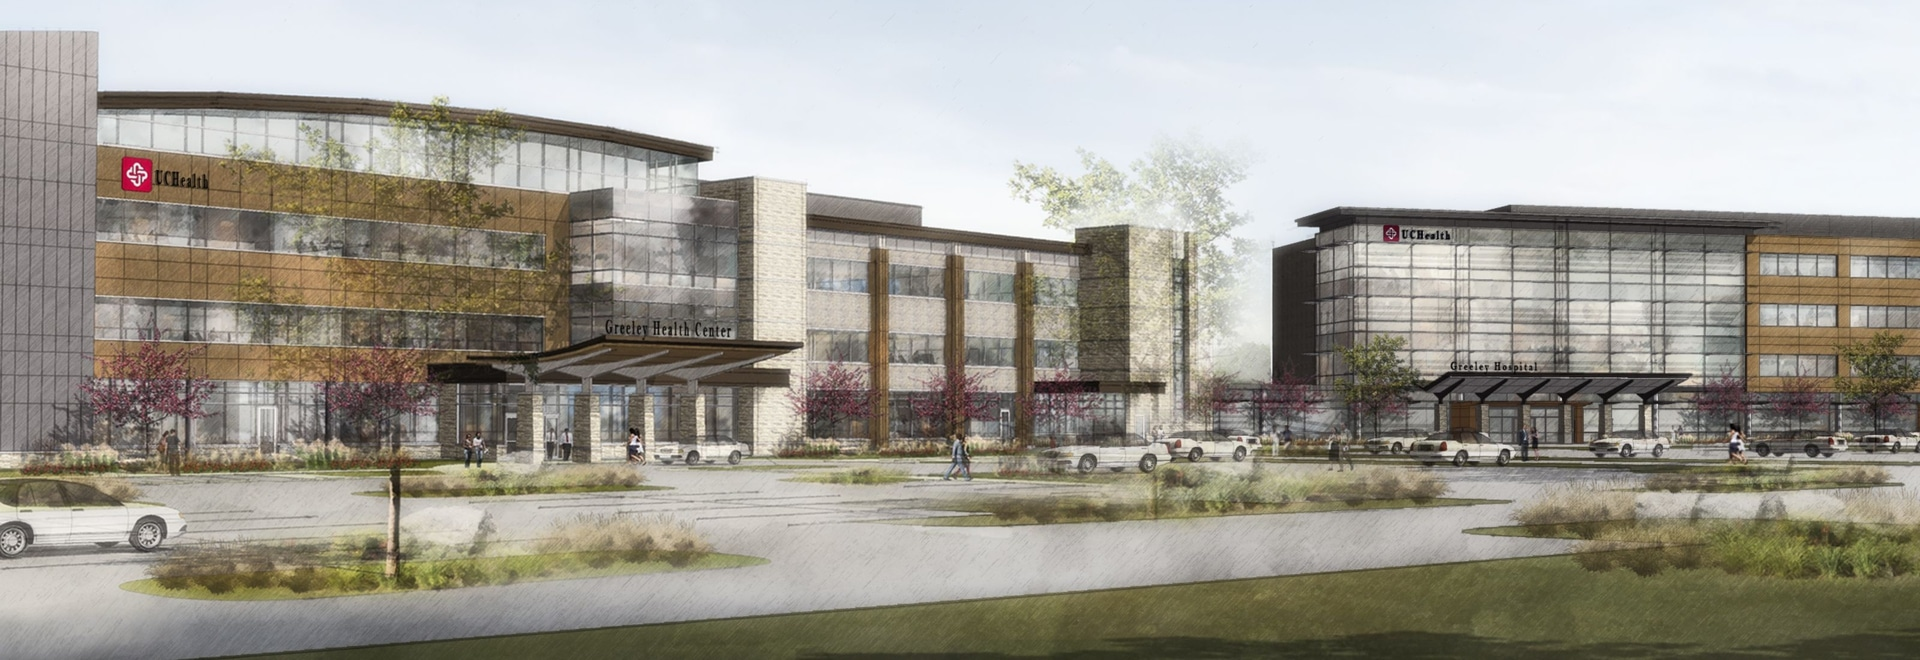 UCHealth to Build New Hospital in Greeley - Greeley, CO, USA